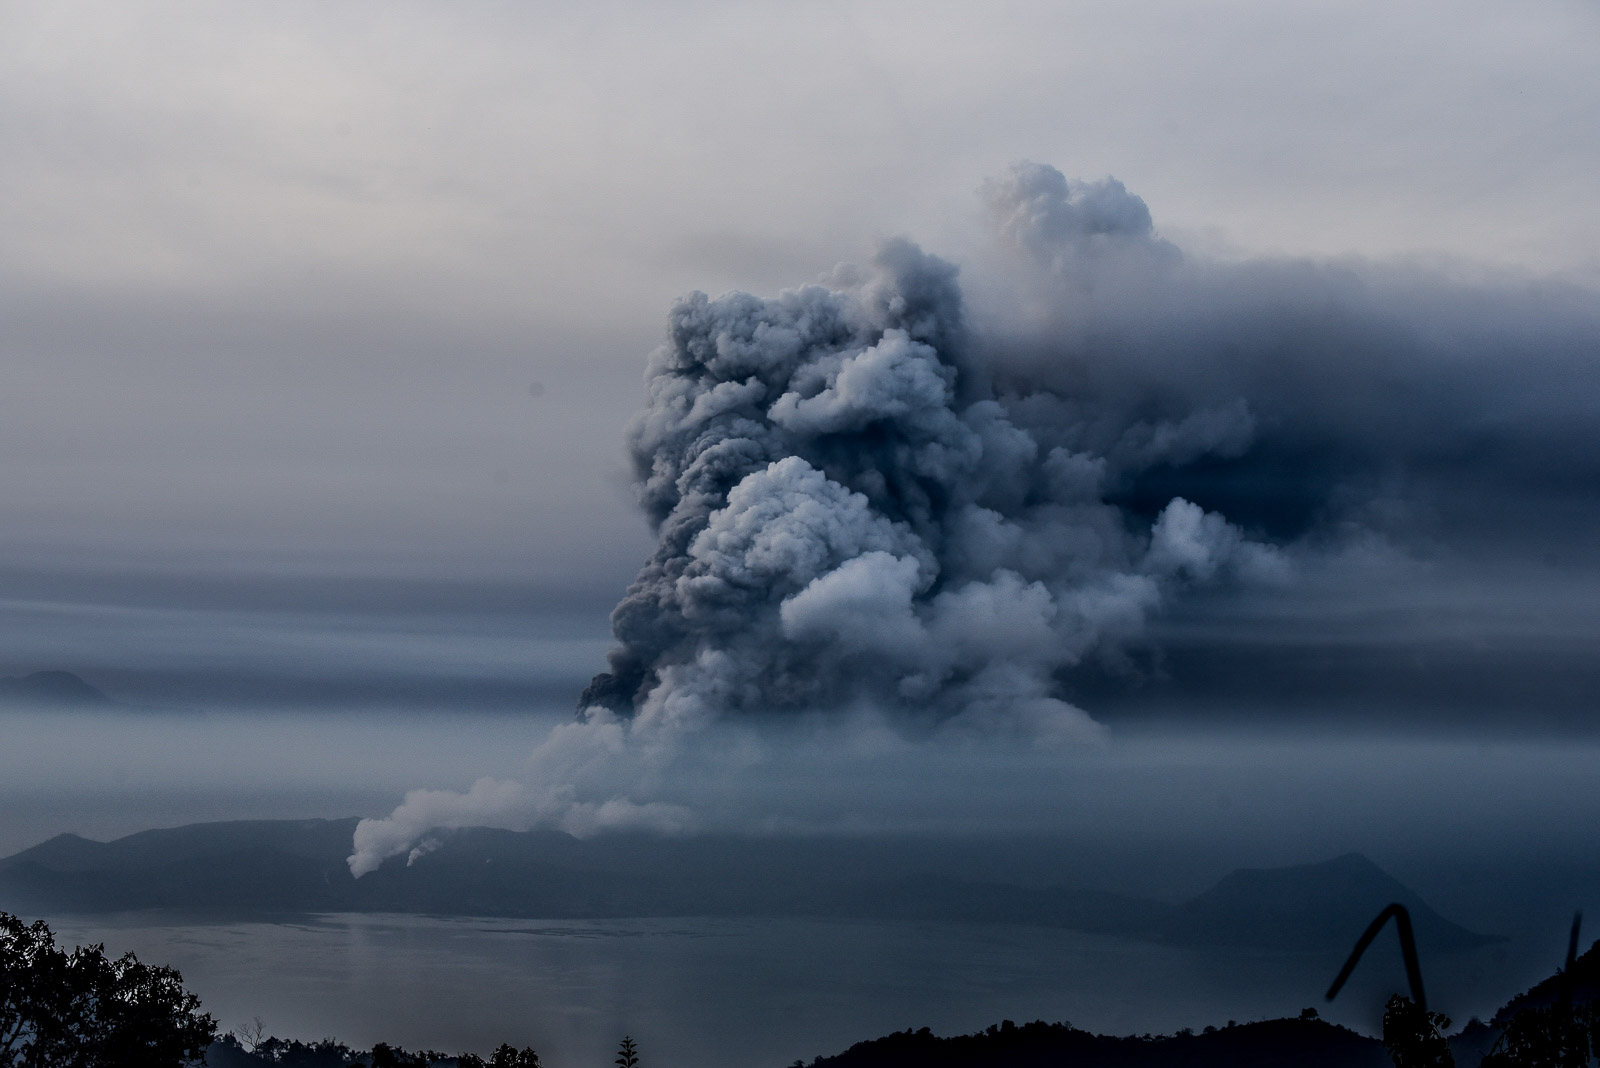 DEATHS IN BATANGAS. A view of Taal Volcano from Tagaytay City as it spews thick clouds of ash on January 13, 2020. Photo by Alecs Ongcal/Rappler